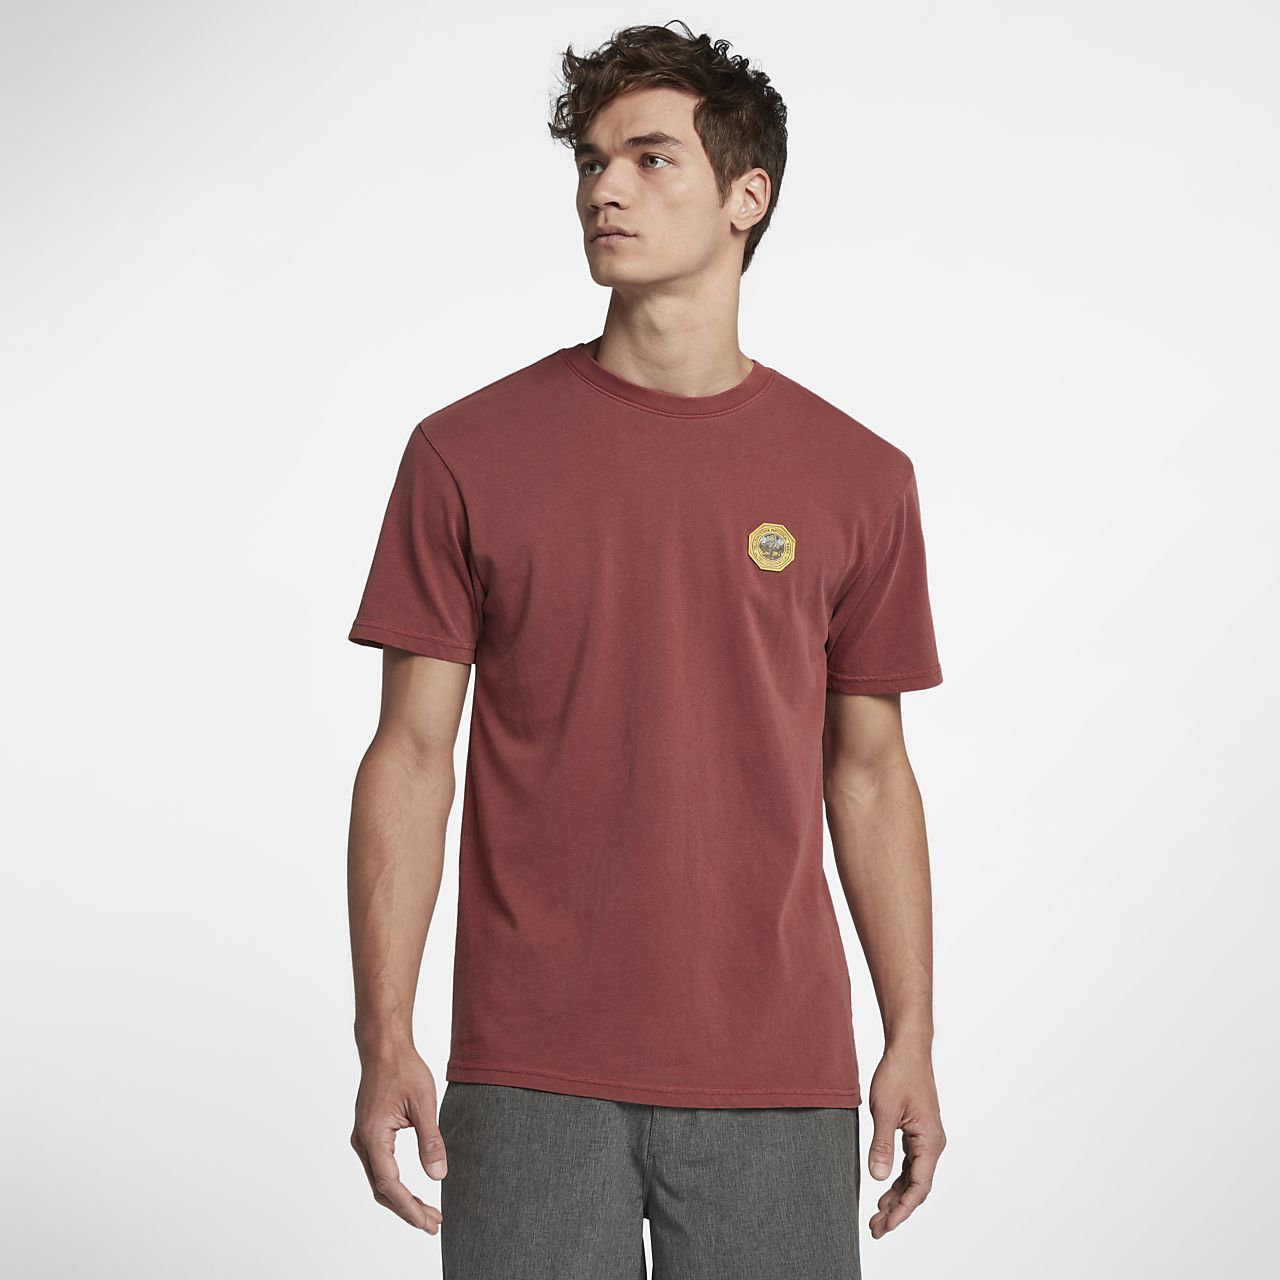 Hurley x Pendleton Grand Canyon Patch T-Shirt Amazing Price For Sale Sale Shop For Outlet Inexpensive Buy Cheap The Cheapest Outlet Brand New Unisex QQbbvkTQ